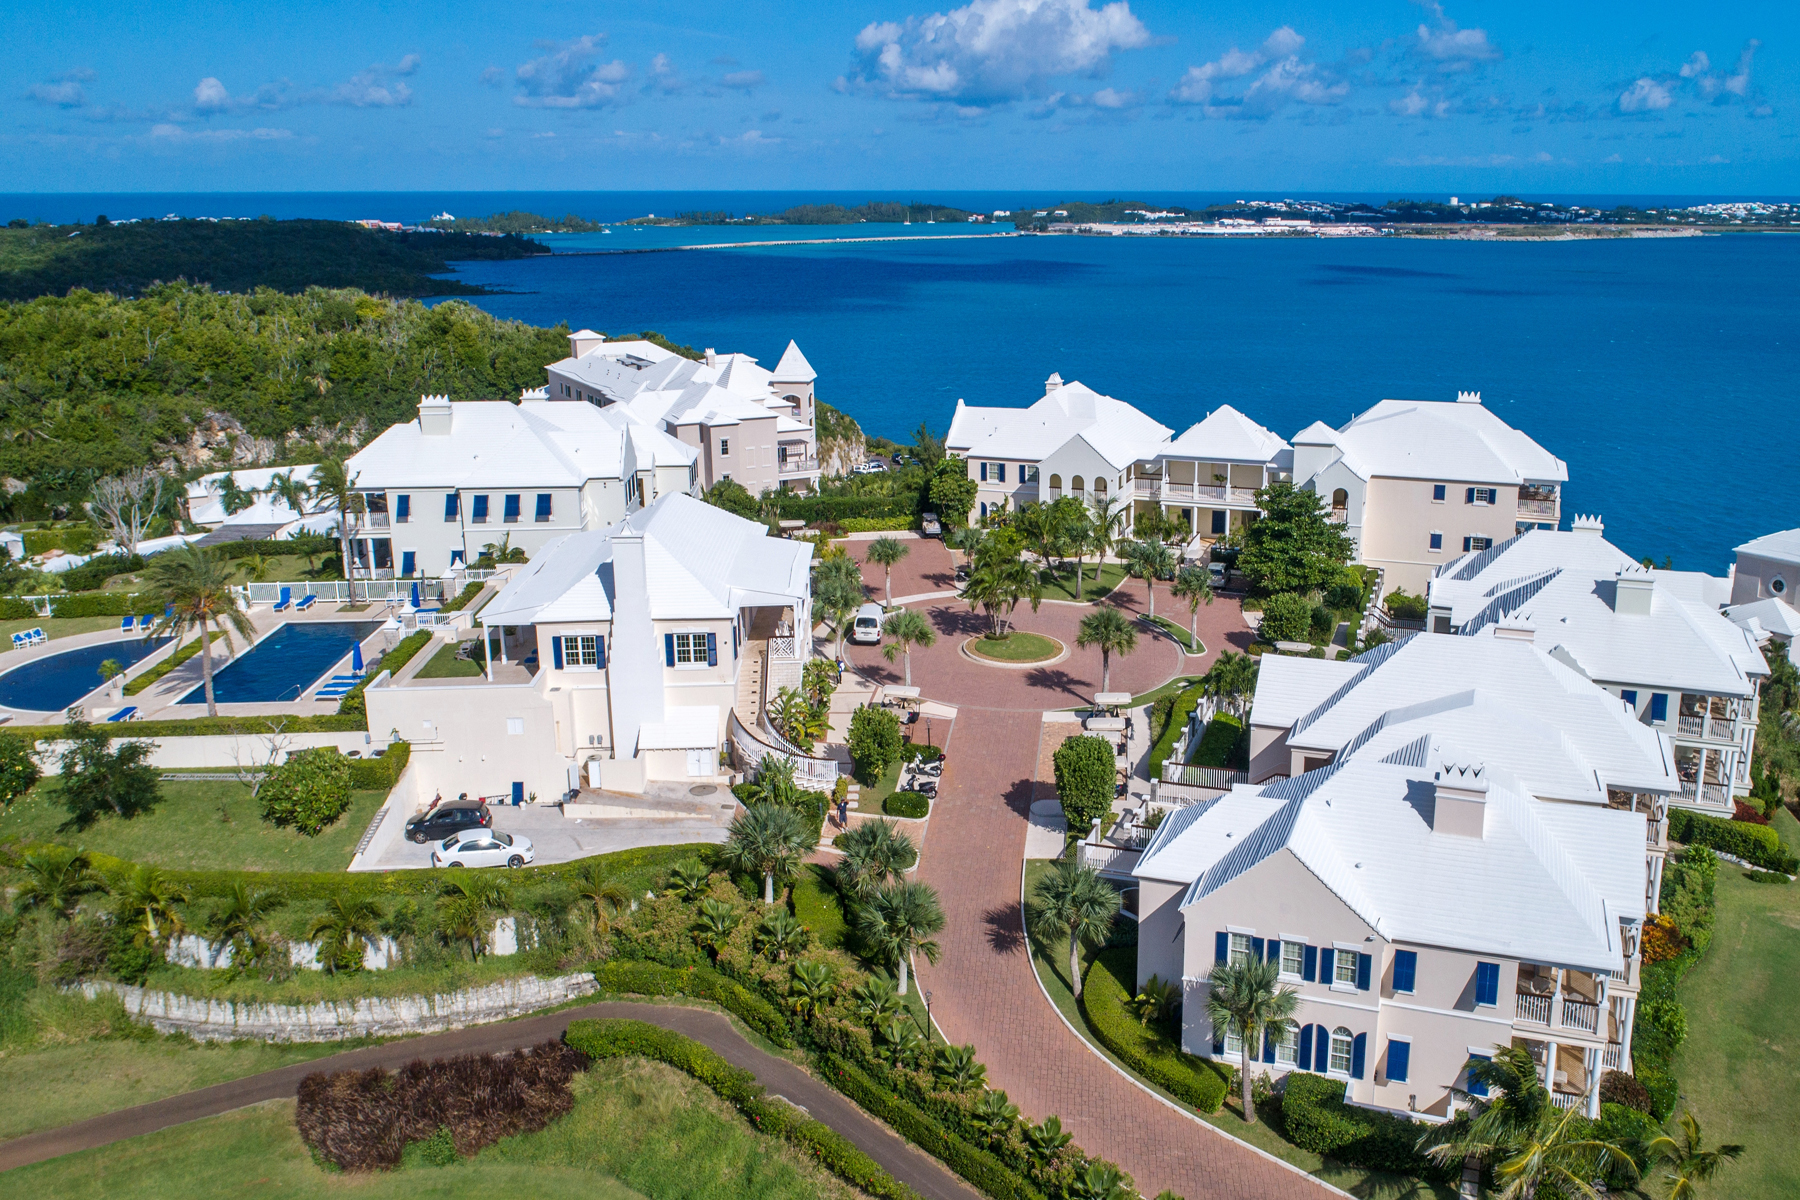 Fractional Ownership Properties for Sale at Tucker's Point Golf Villa - 3 Bedroom St Georges Parish, Bermuda Bermuda